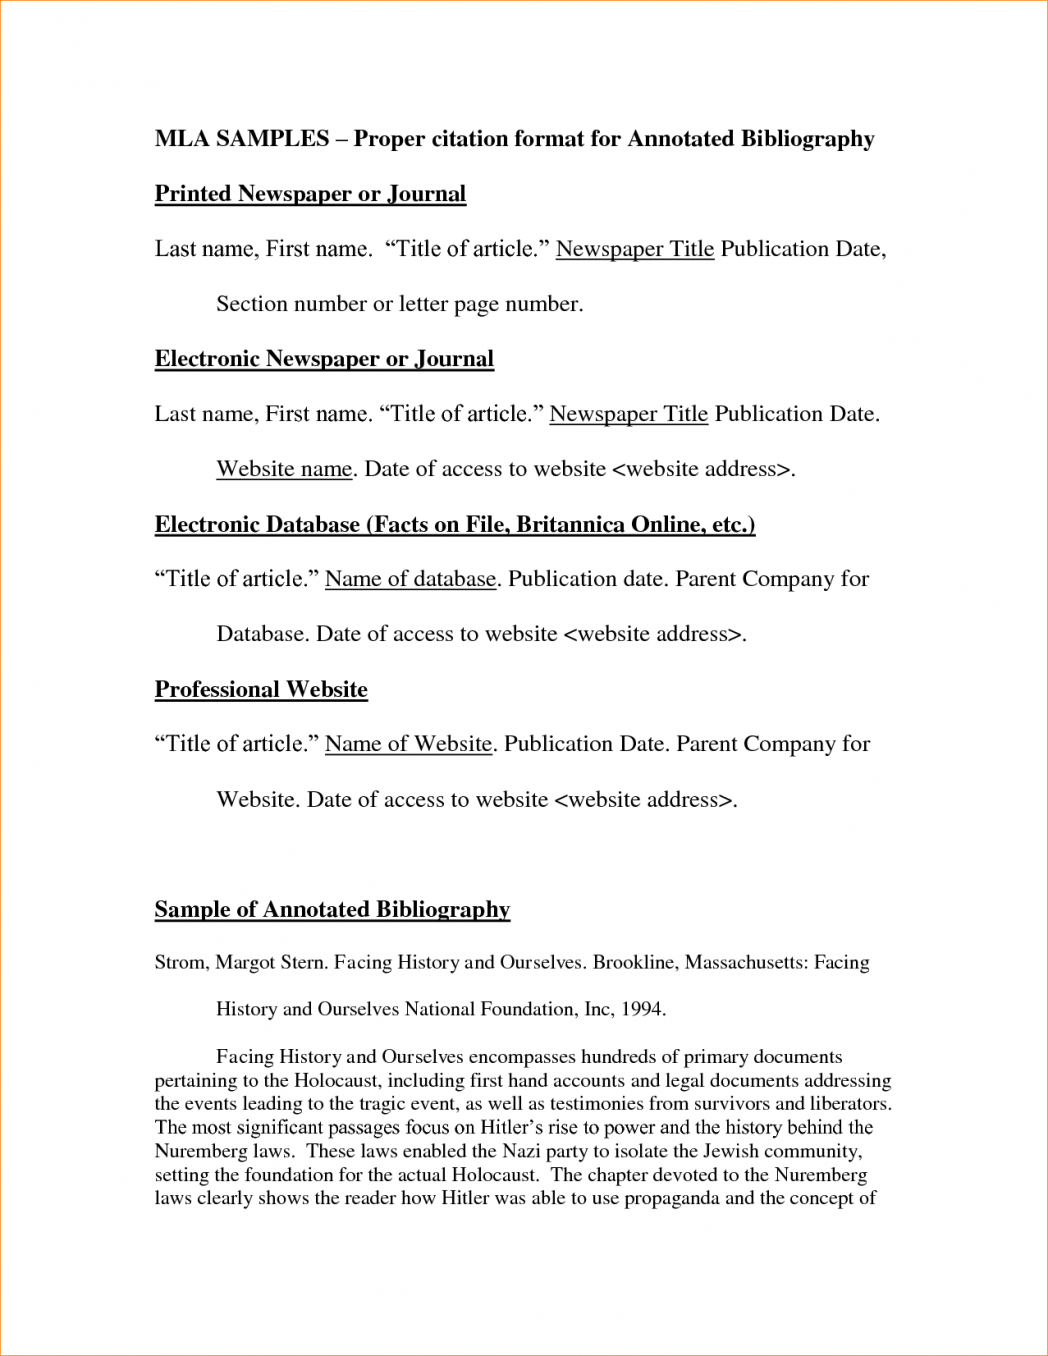 017 Essay Example Mla Format In Narrative Annotated Bibliography Template With Cover Page Title Works Cited Argumentative Persuasive Pdf 1048x1356 Beautiful Sample 2017 Comparison Full